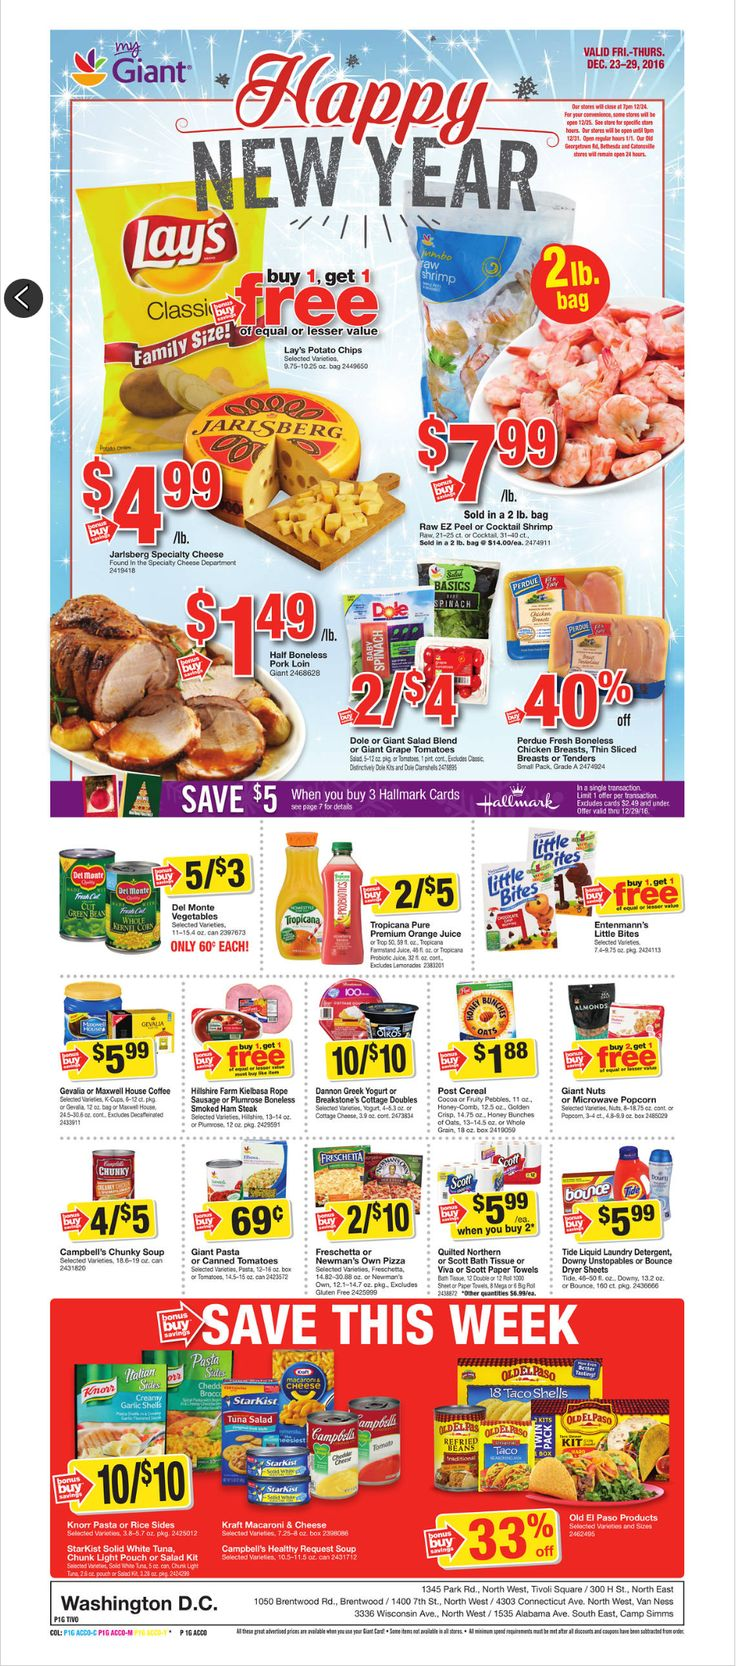 Giant Food Weekly Ad December 23 - 29, 2016 - http://www.olcatalog.com/grocery/giant-food-weekly-ad.html